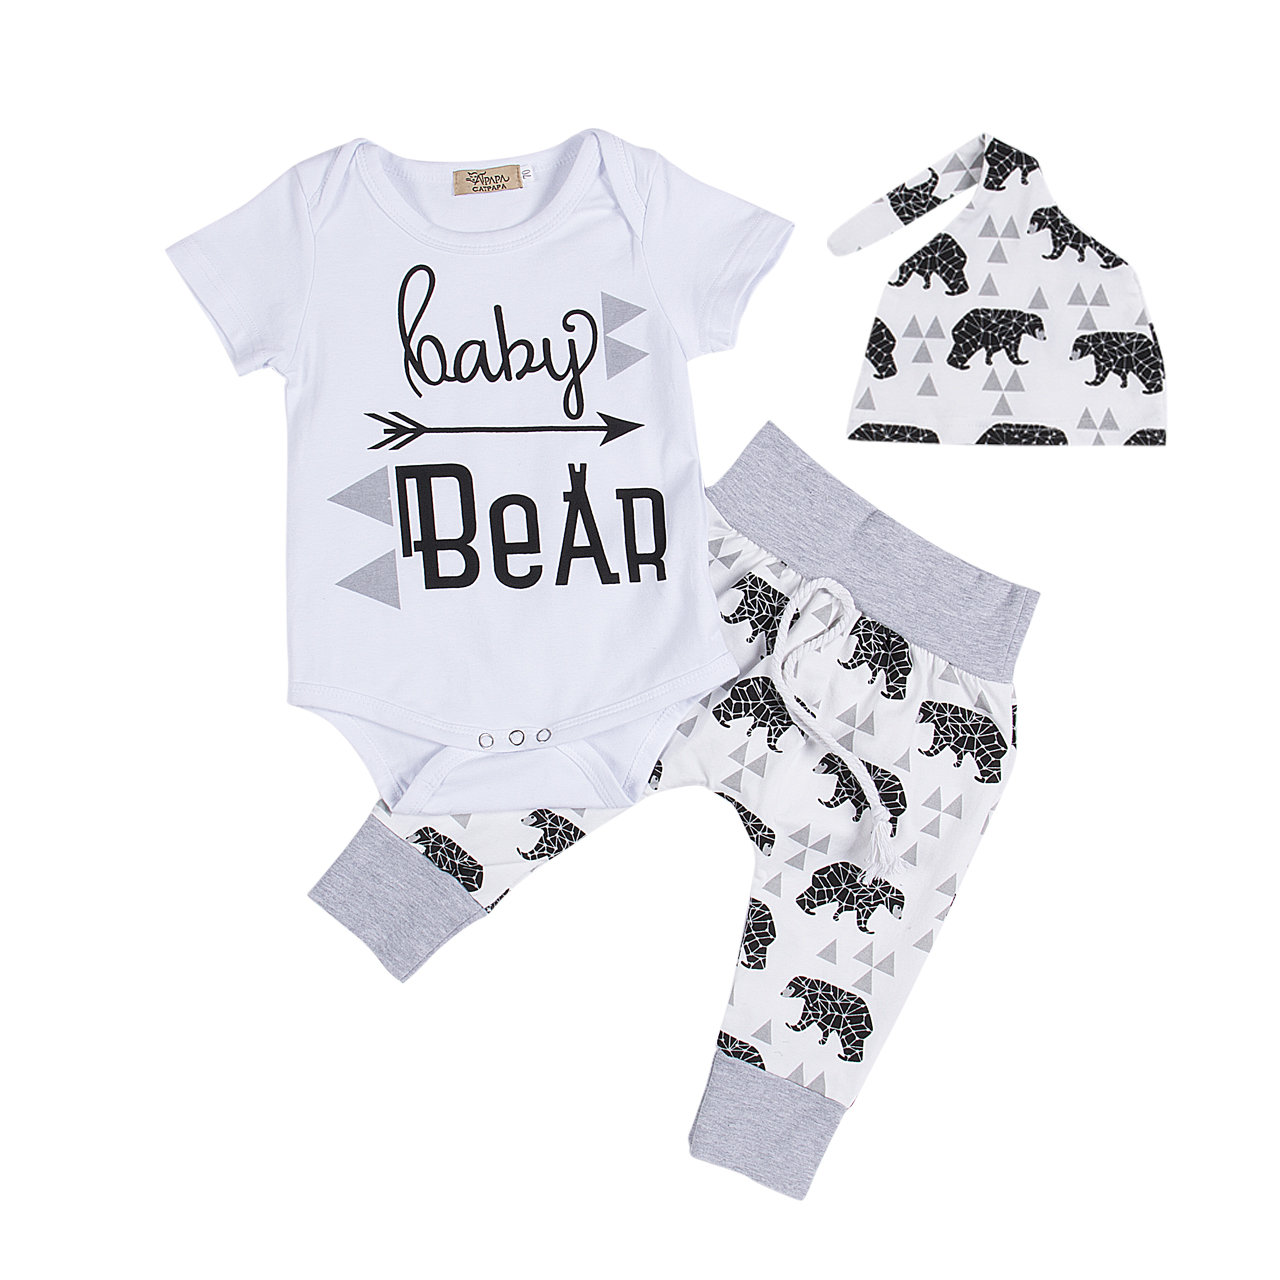 3PCS Set Newborn Infant Baby Clothes Short Sleeve Baby Bear Boys Girls Romper Pant Hat Outfit Bebek Giyim Clothing Costume baby clothing summer infant newborn baby romper short sleeve girl boys jumpsuit new born baby clothes